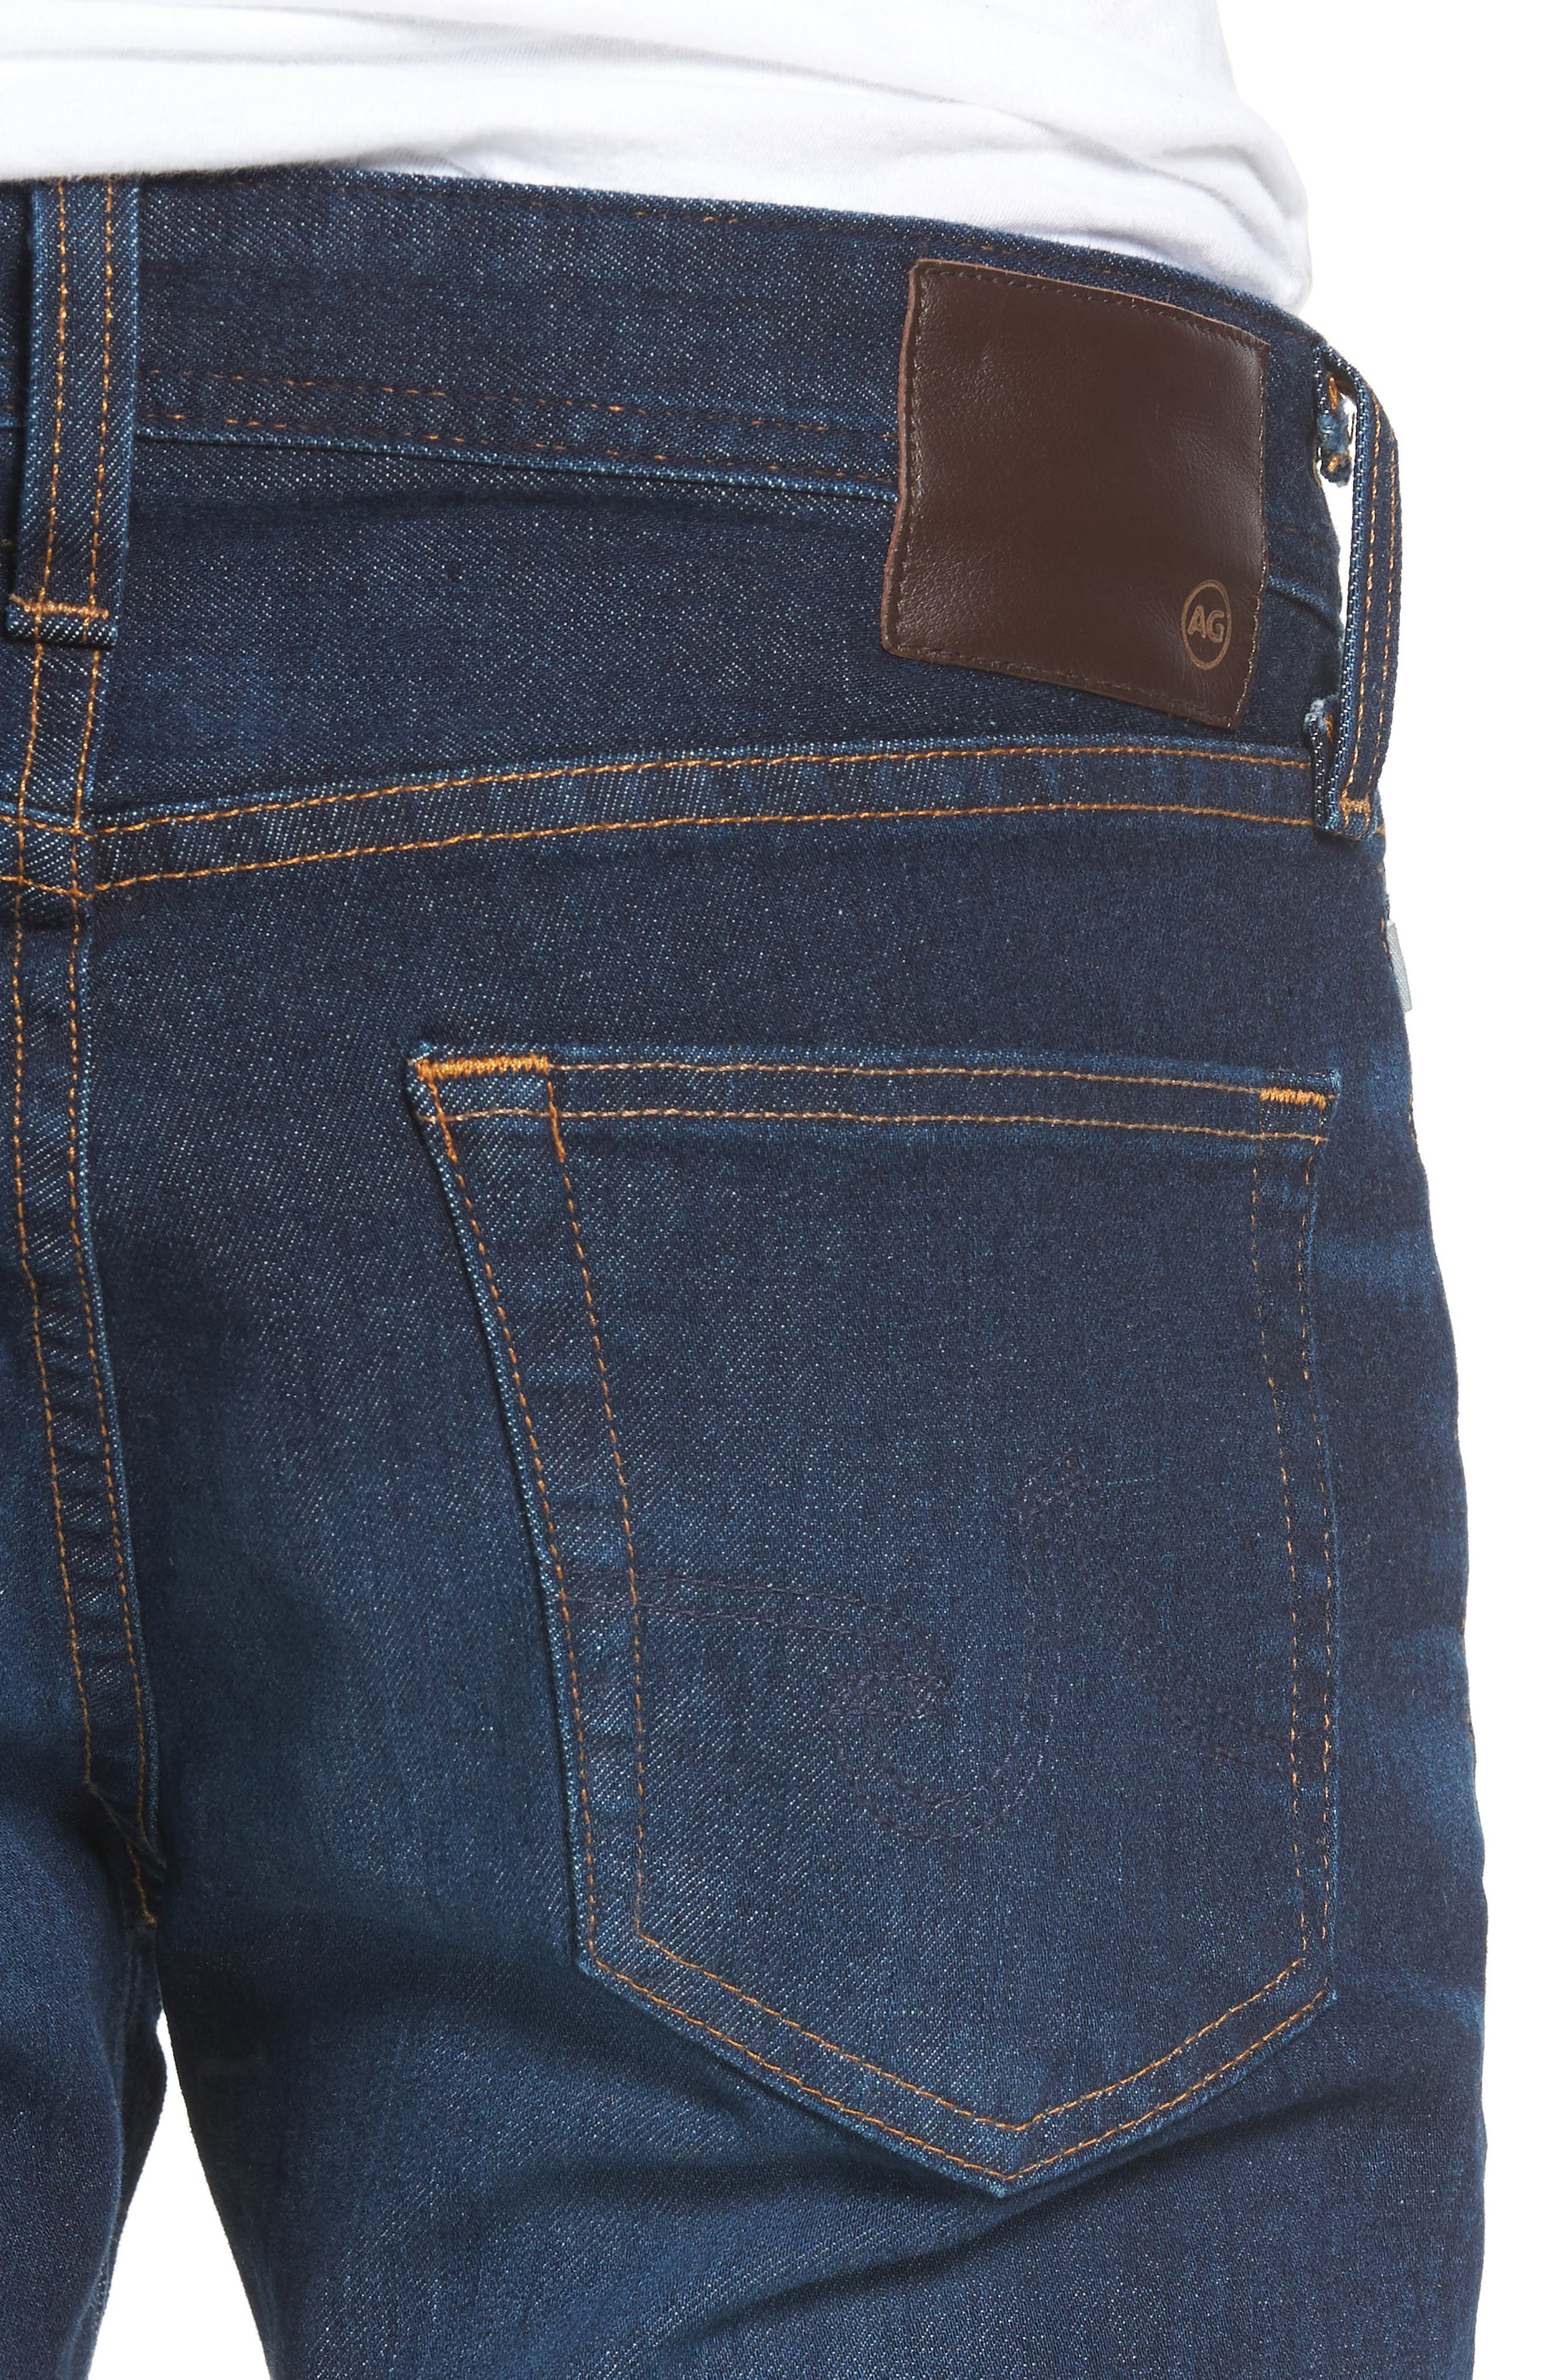 Dylan Skinny Fit Jeans,                             Alternate thumbnail 4, color,                             5 YEARS